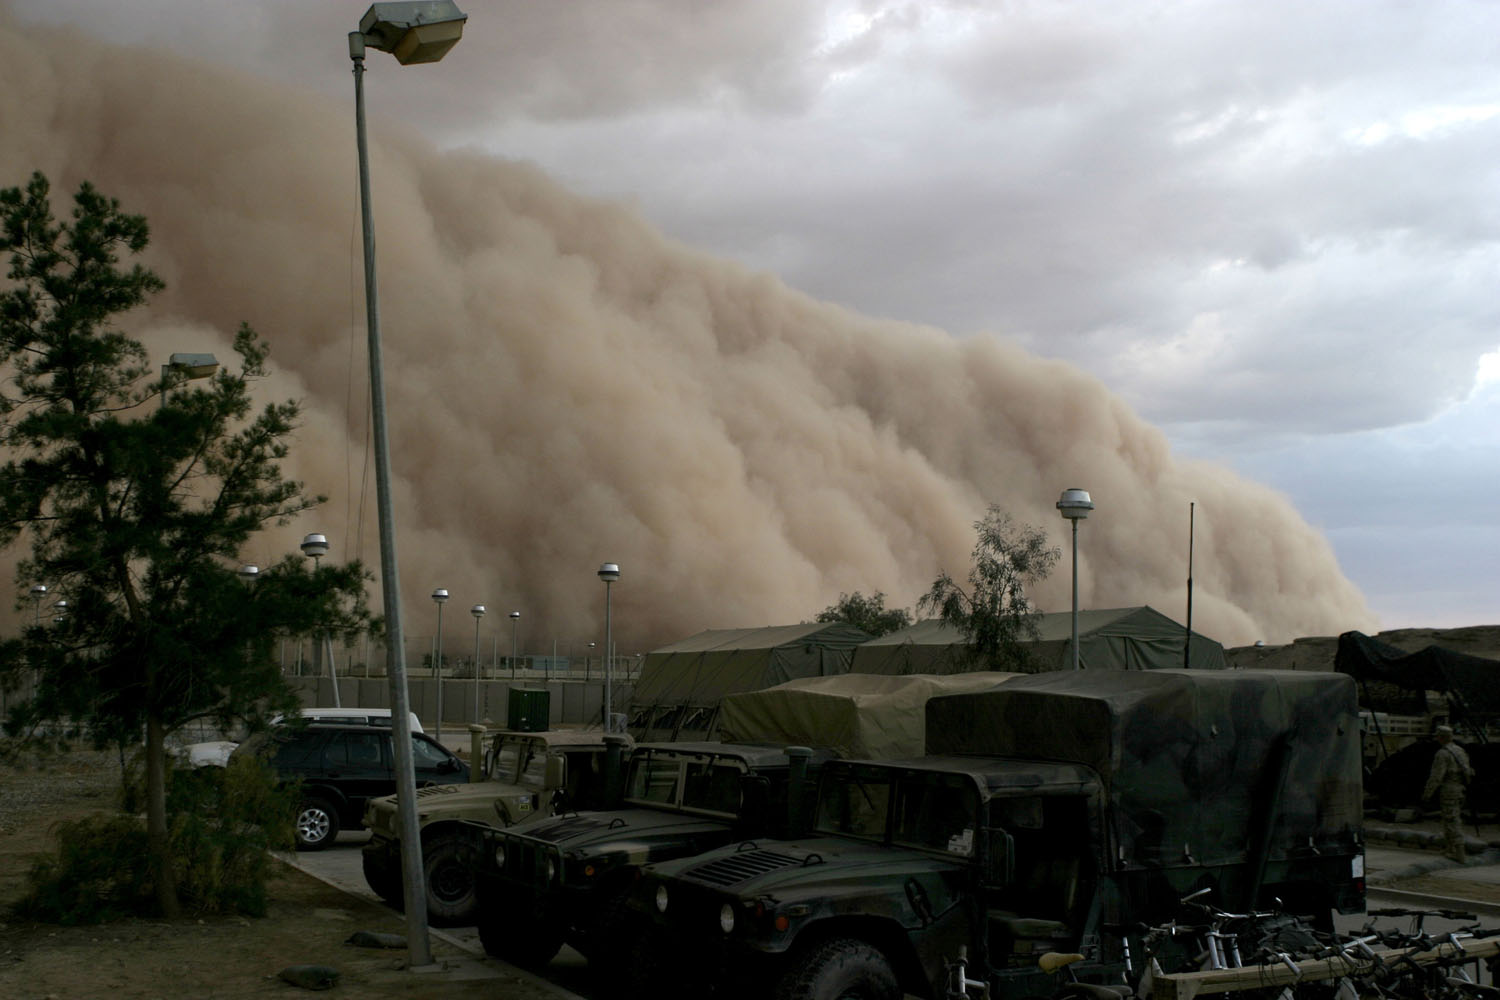 A massive sandstorm (haboob) closing in on a military camp in Iraq